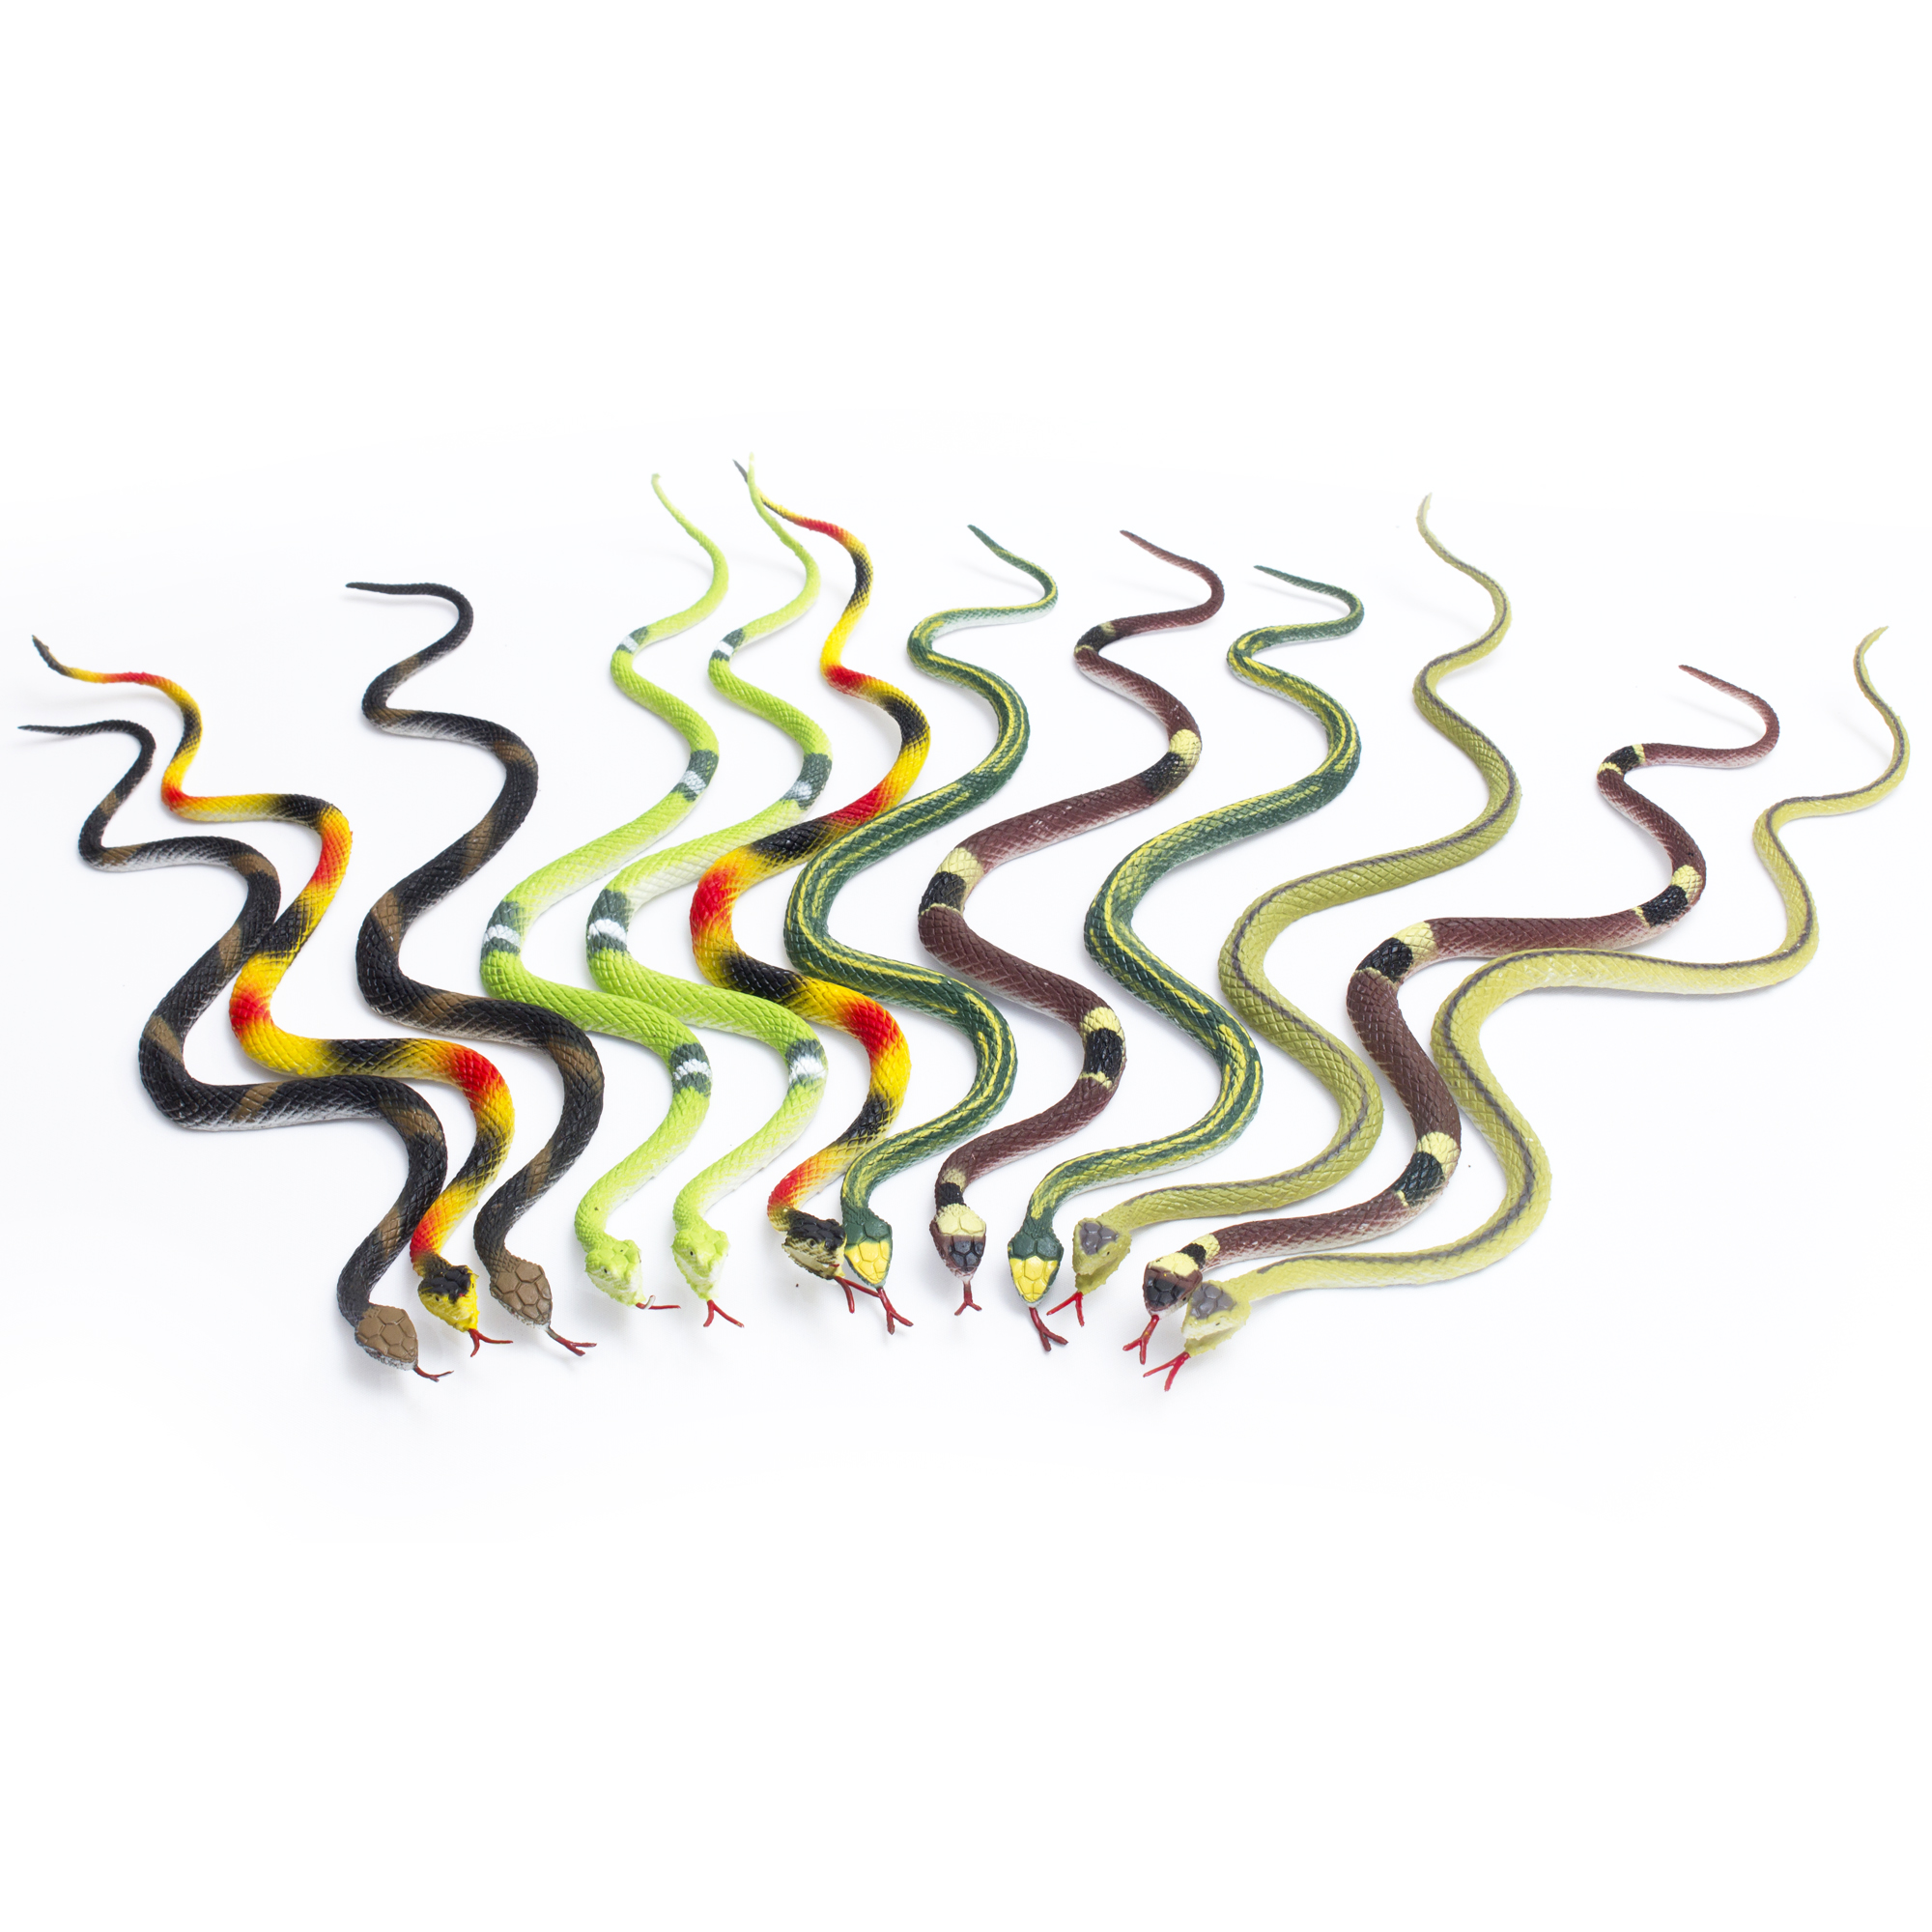 14 Inch Rubber Snakes - Assorted 12ct